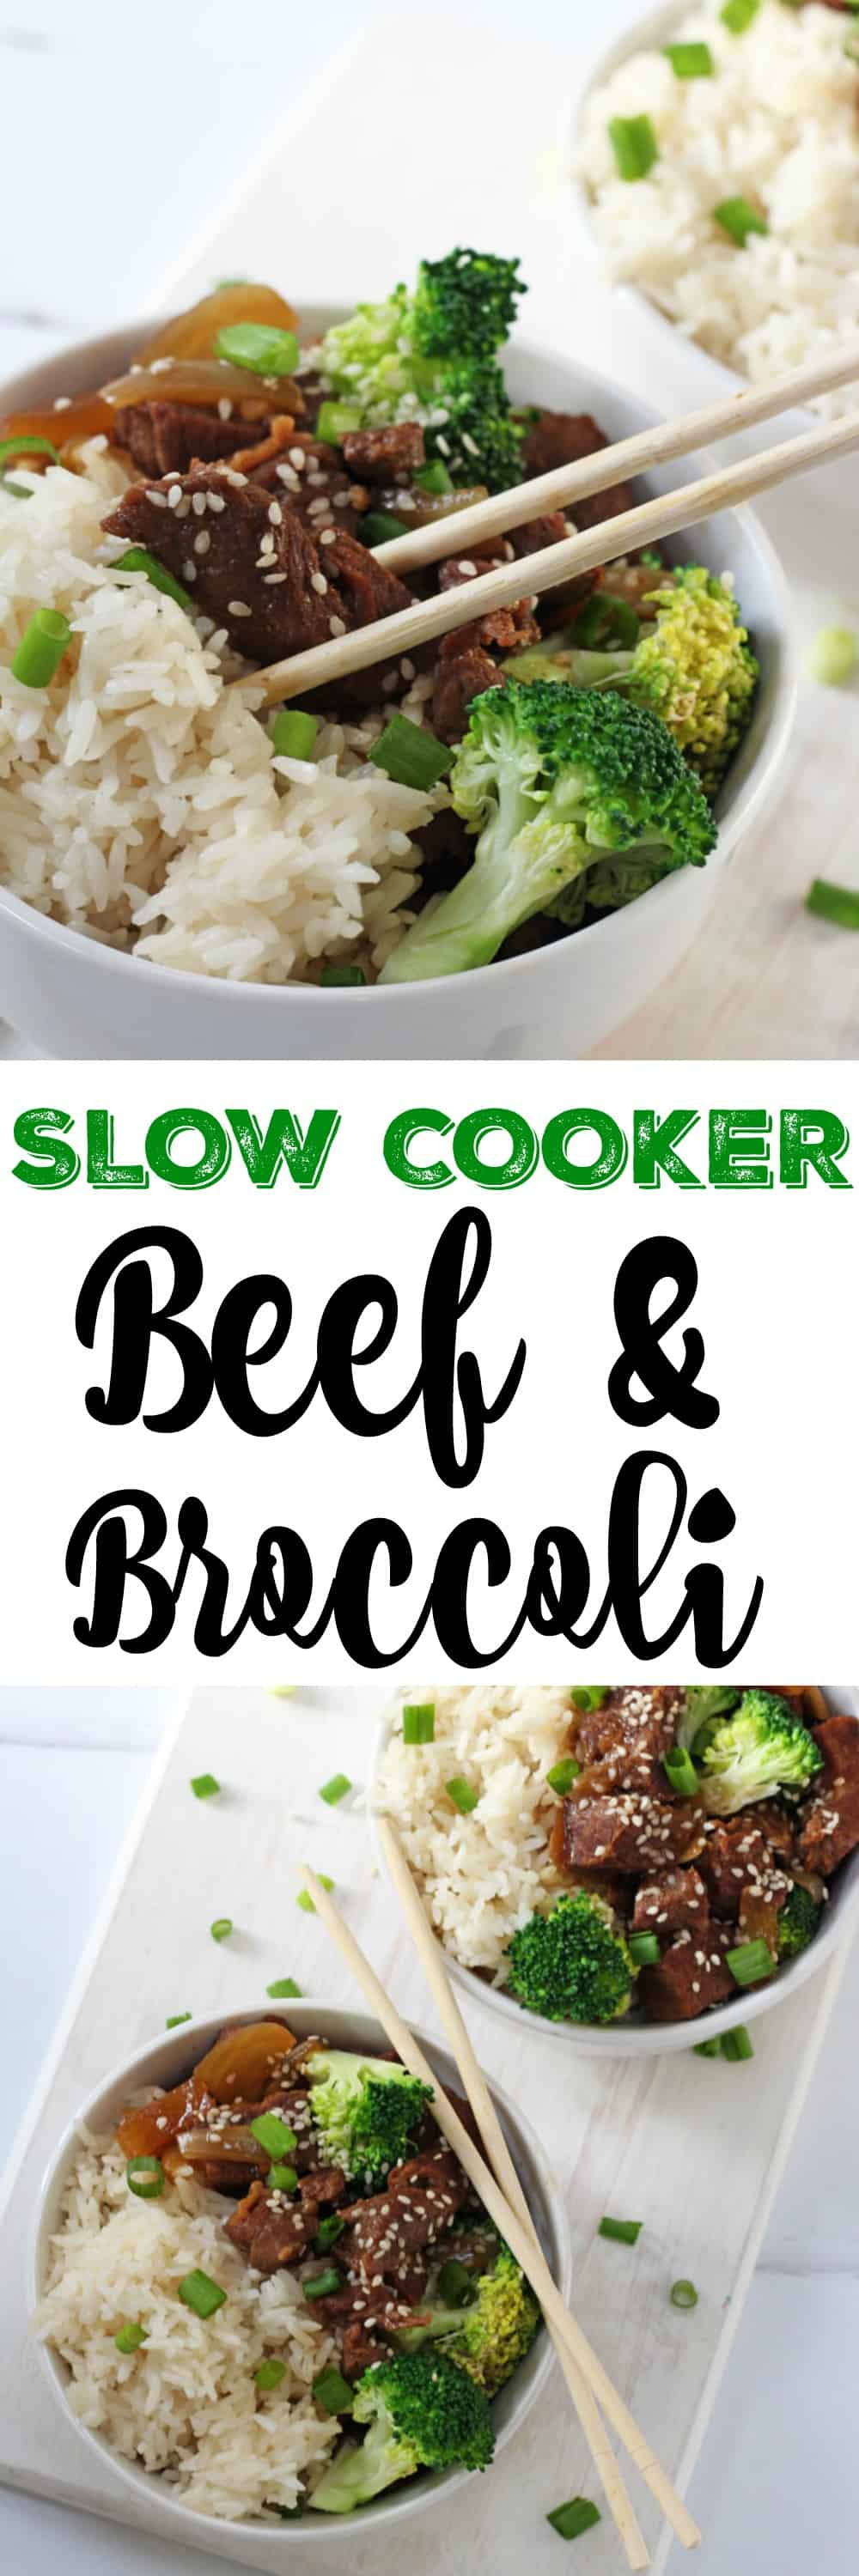 A super simple and delicious Beef and Broccoli recipe. This is so easy to make, simply chuck all the ingredients into the slow cooker or crockpot and leave it to cook all day.